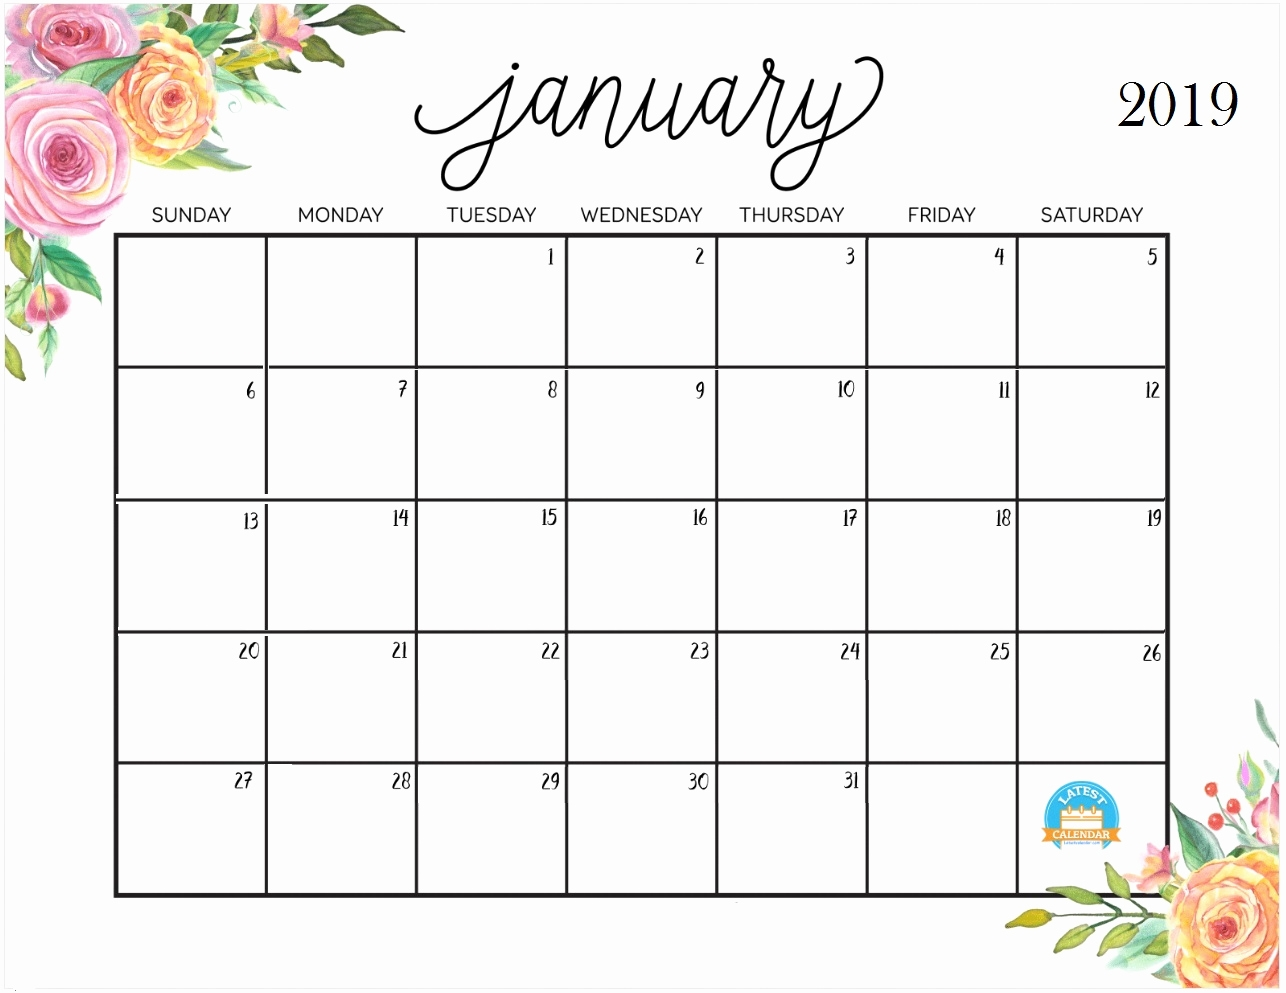 free printable 2019 calendar with holidays bangladesh printable::January 2019 Calendar with Holidays Printable